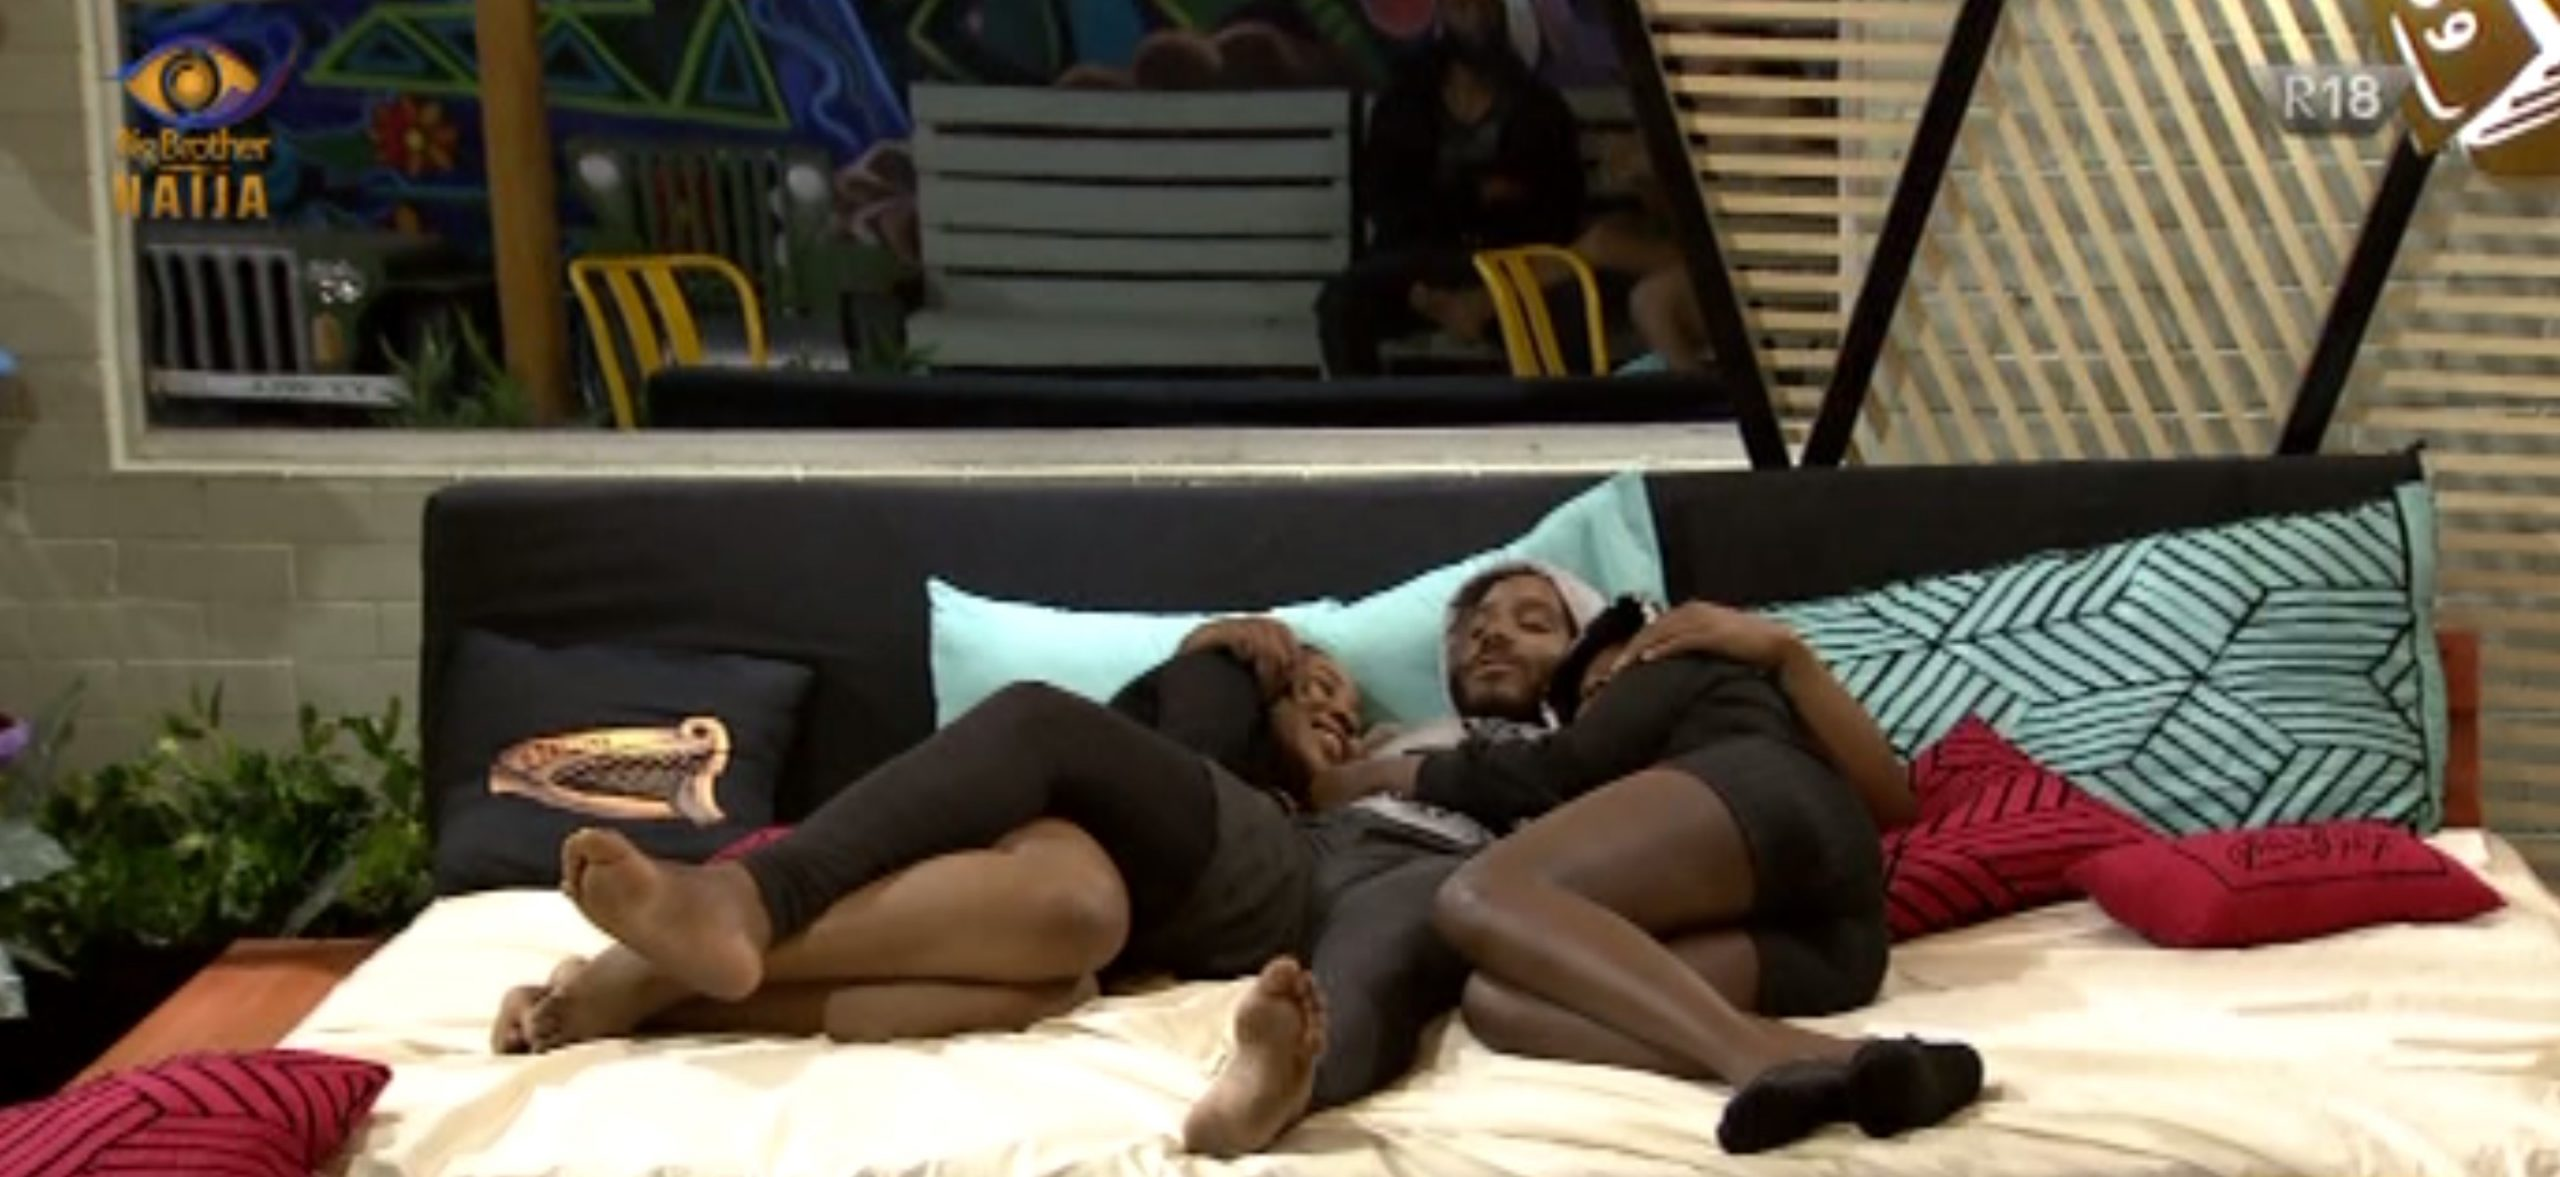 #BBNaija2020 : Love Triangles (video)